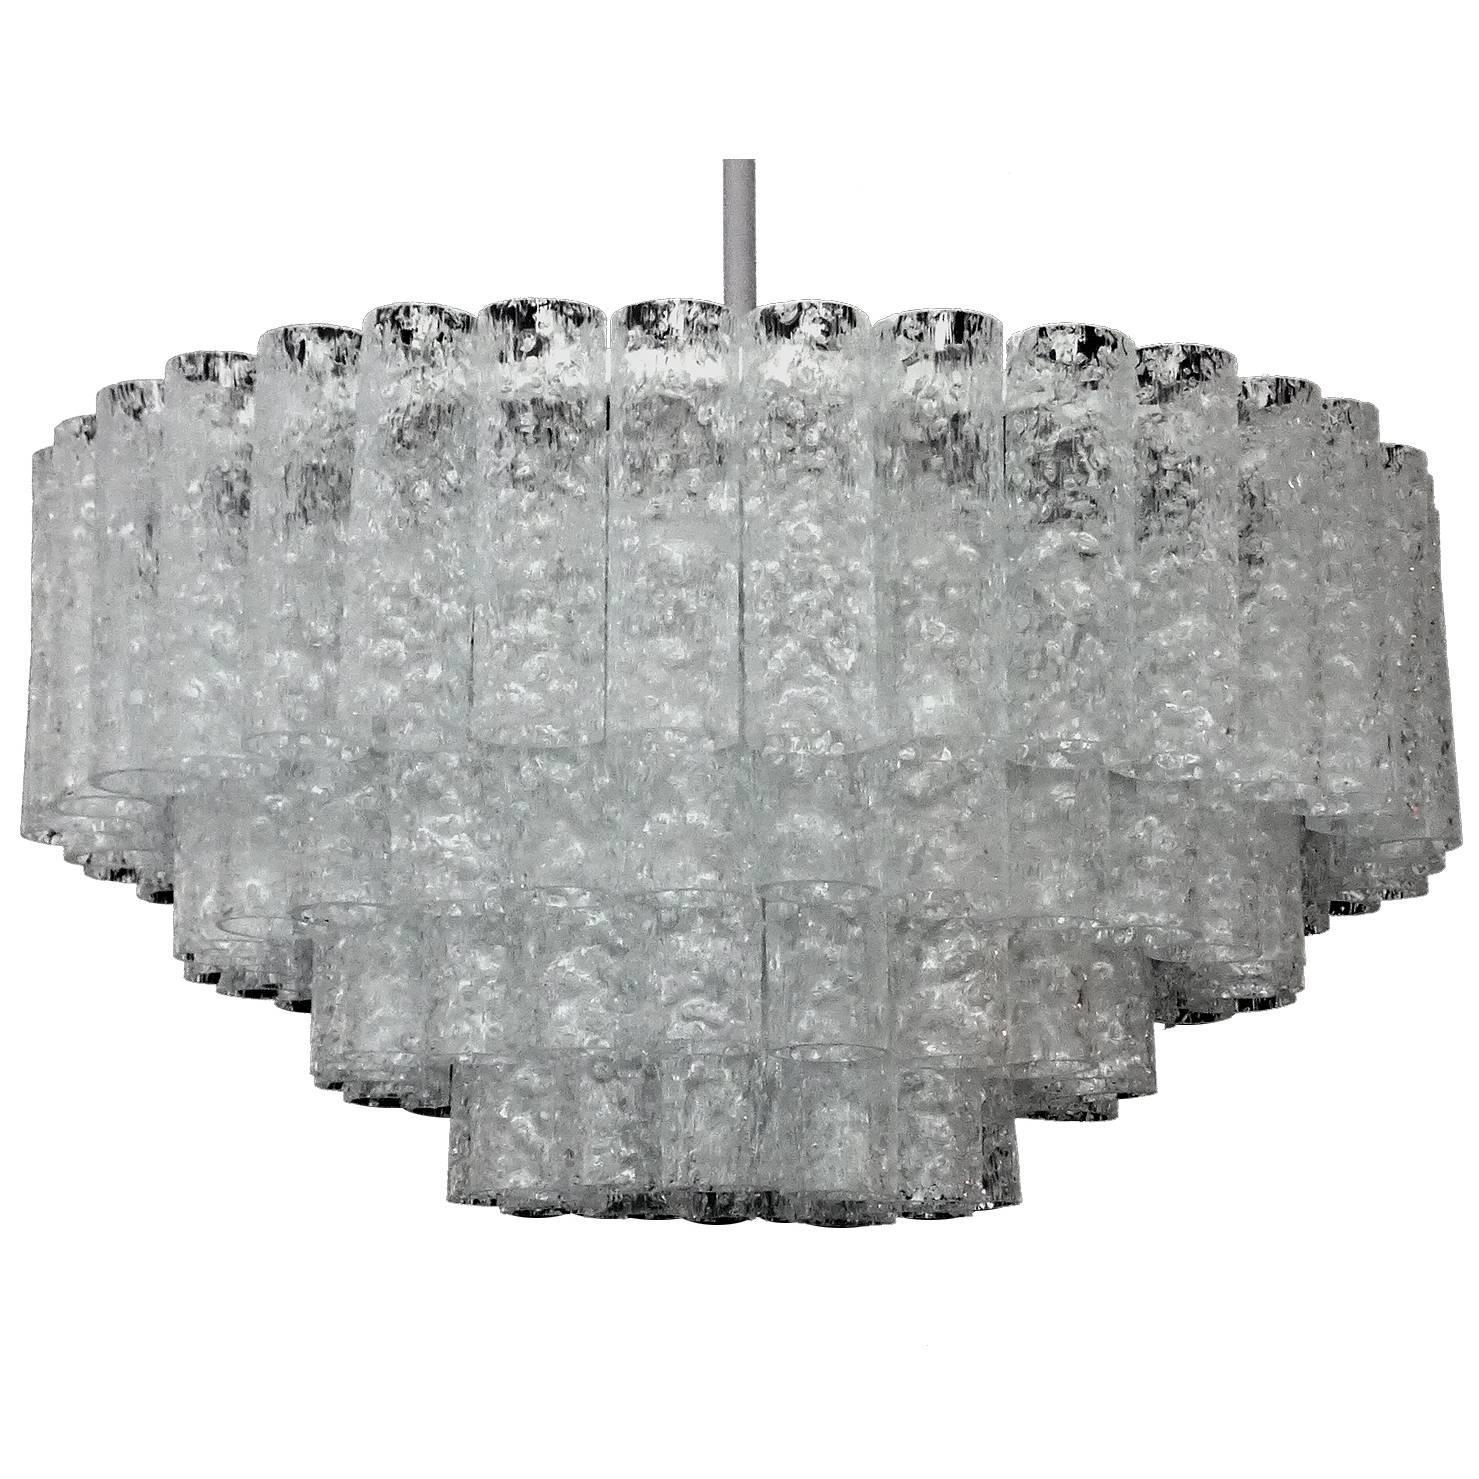 Doria leuchten chandeliers and pendants 157 for sale at 1stdibs very large doria mid century chandelier 1960s murano glass arubaitofo Images